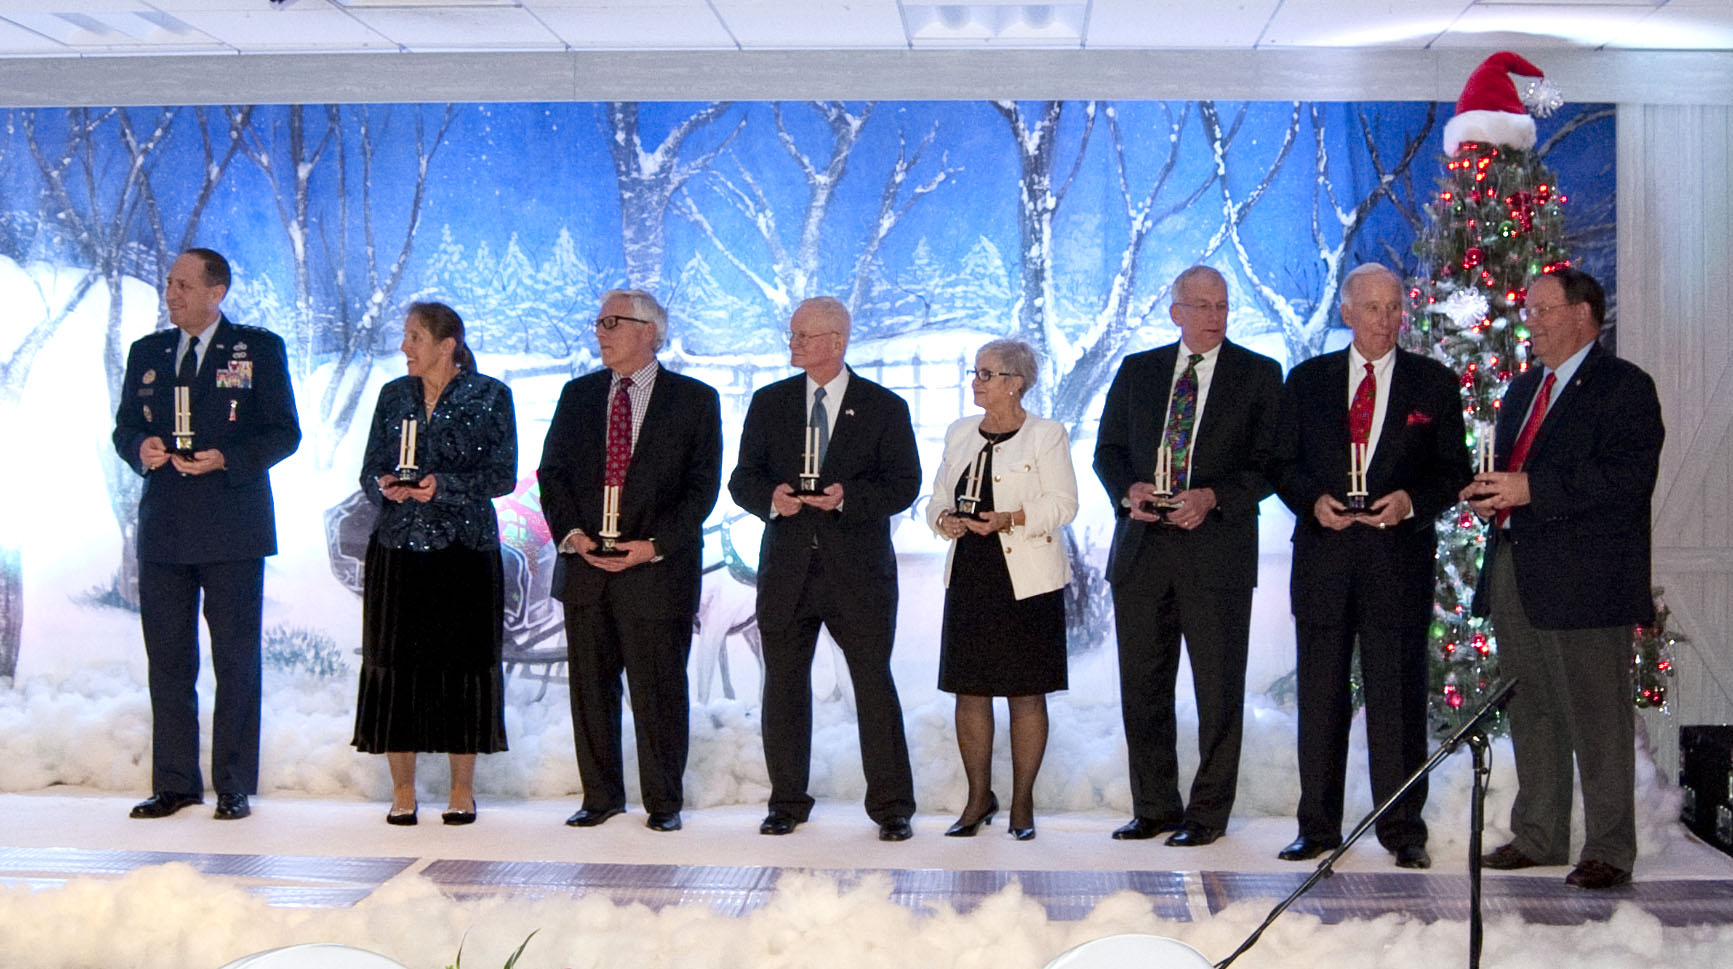 "Eight generals accept awards from President Jeanie Webb at the Regents Christmas Dinner 2015. Pictured from left to right:  Lieutenant General Lee K. Levy II, Linda Litchfield (accepting on behalf of Lieutenant General Bruce Litchfield, Ret.),  Major General Myles Deering, United States Army National Guard Retired and Oklahoma Secretary of Veterans Affairs, Major General William ""Billy"" Bowden, United States Air Force Retired, Major General Rita Aragon, United States Air National Guard Retired and Governor's Liaison for Veterans Affairs, Major General P. David Gillett Jr, United States Air Force Retired, Brigadier General Richard Hefton, United States Air Force Retired, Brigadier General Ben T. Robison, United States Air Force Retired."